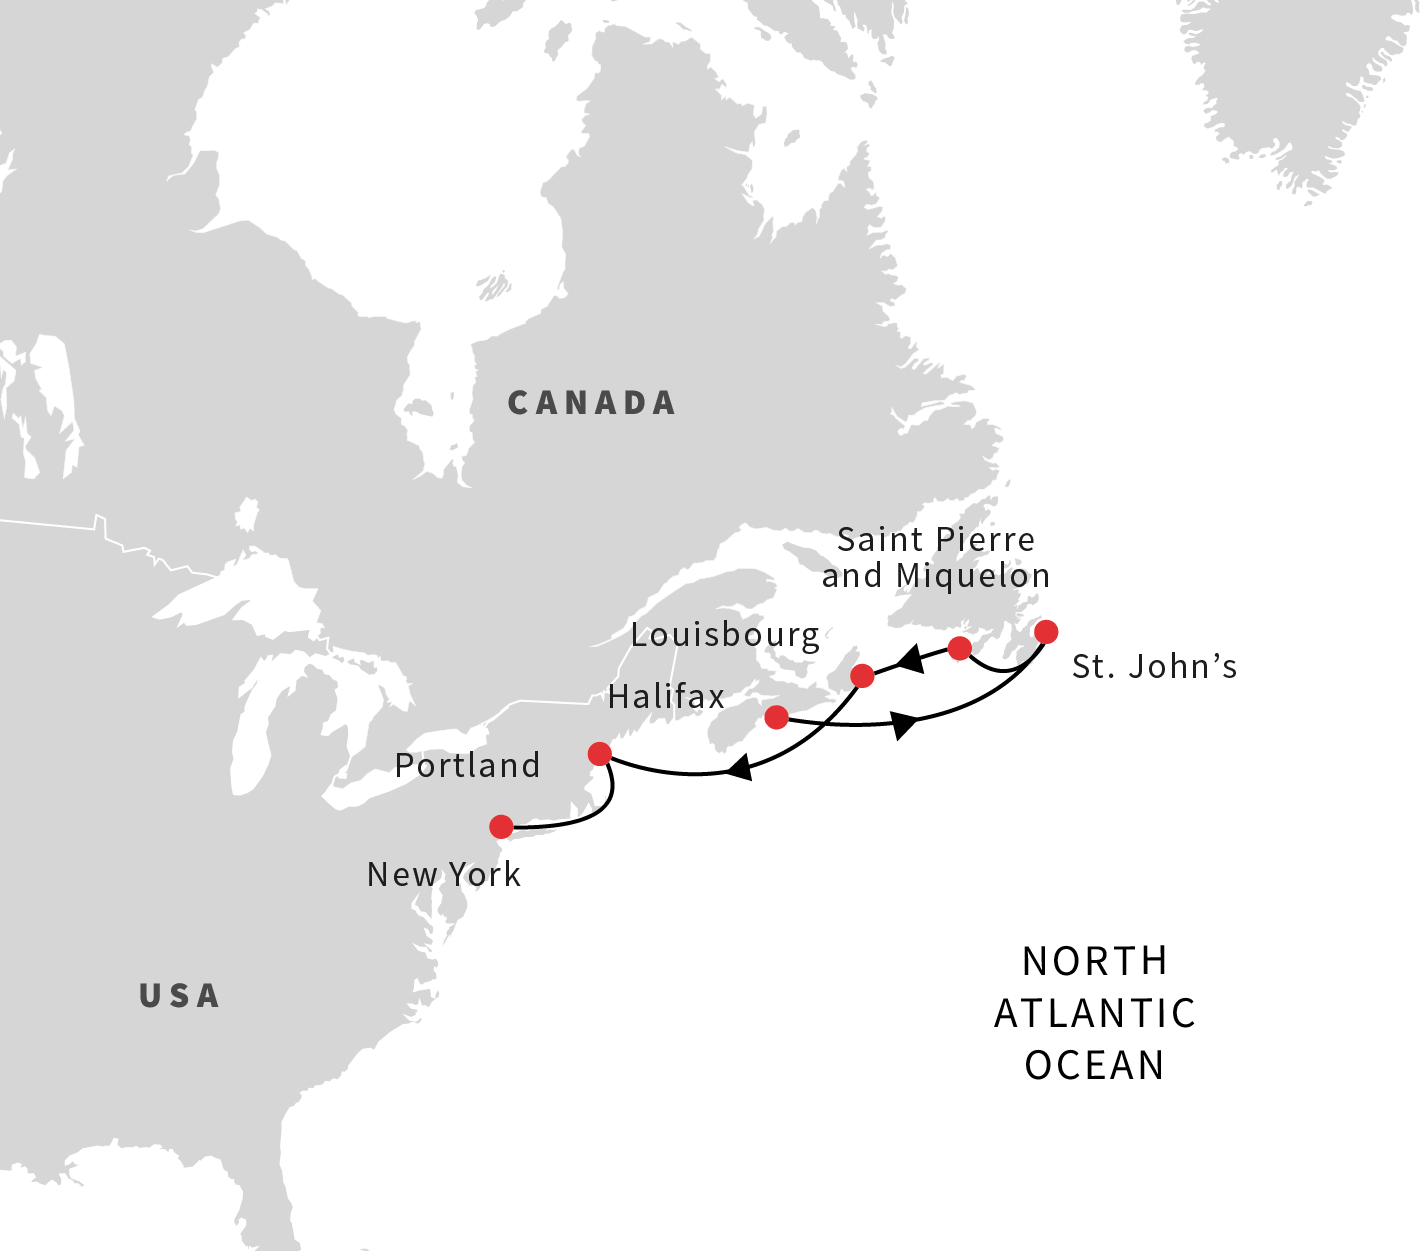 North America Cruises Exploring Eastern Canadas Coast